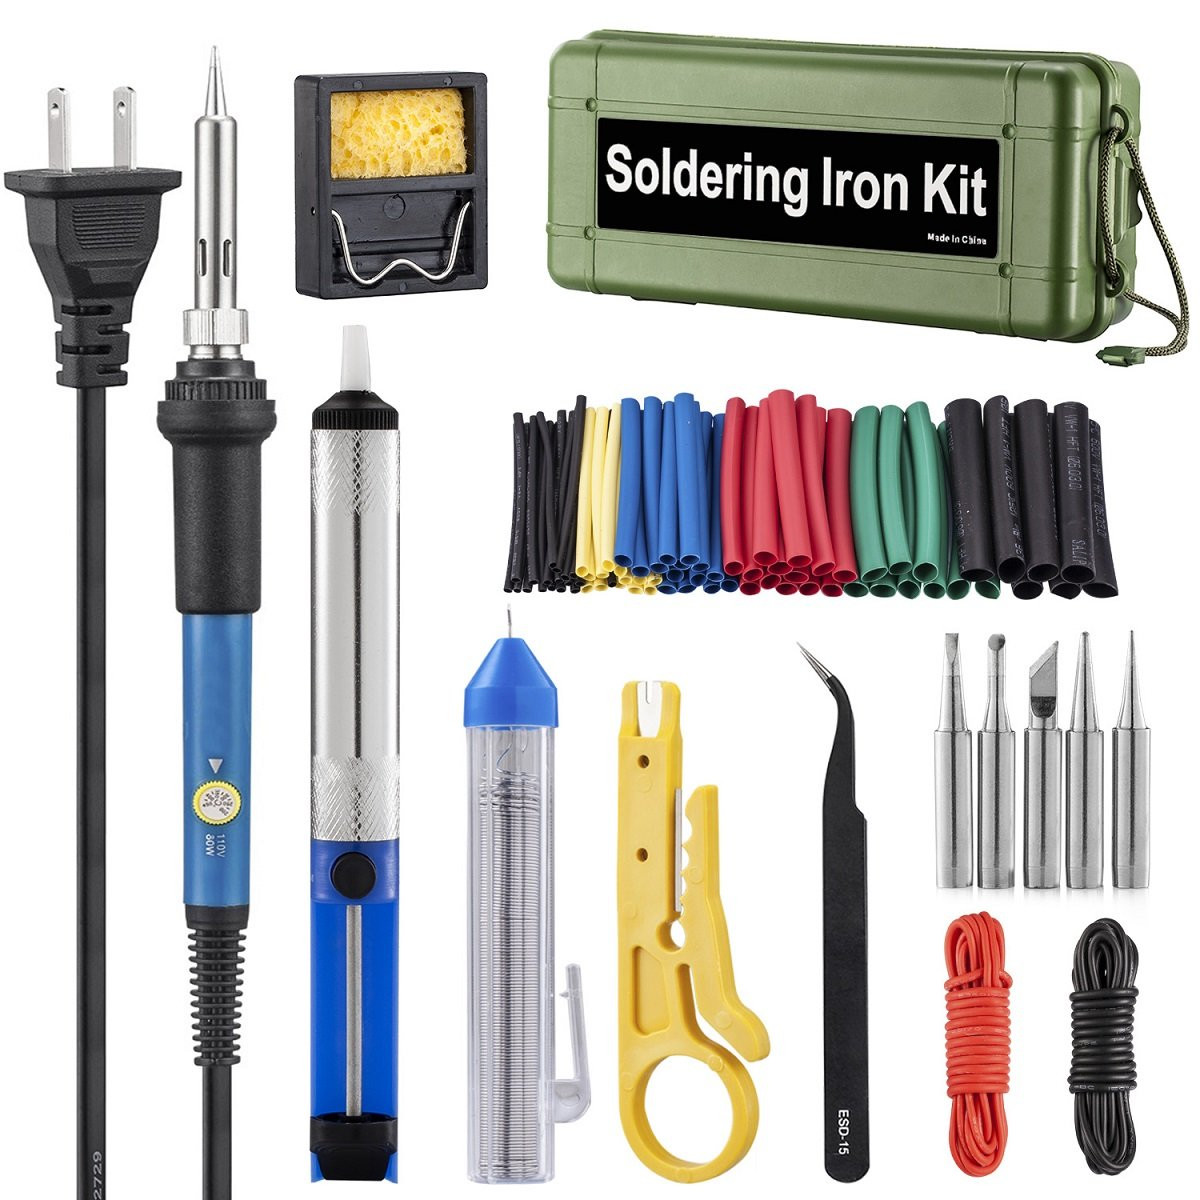 Soldering Iron Kit Electronics, 60W Adjustable Temperature Welding Tool, 5pcs Soldering Tips, Desoldering